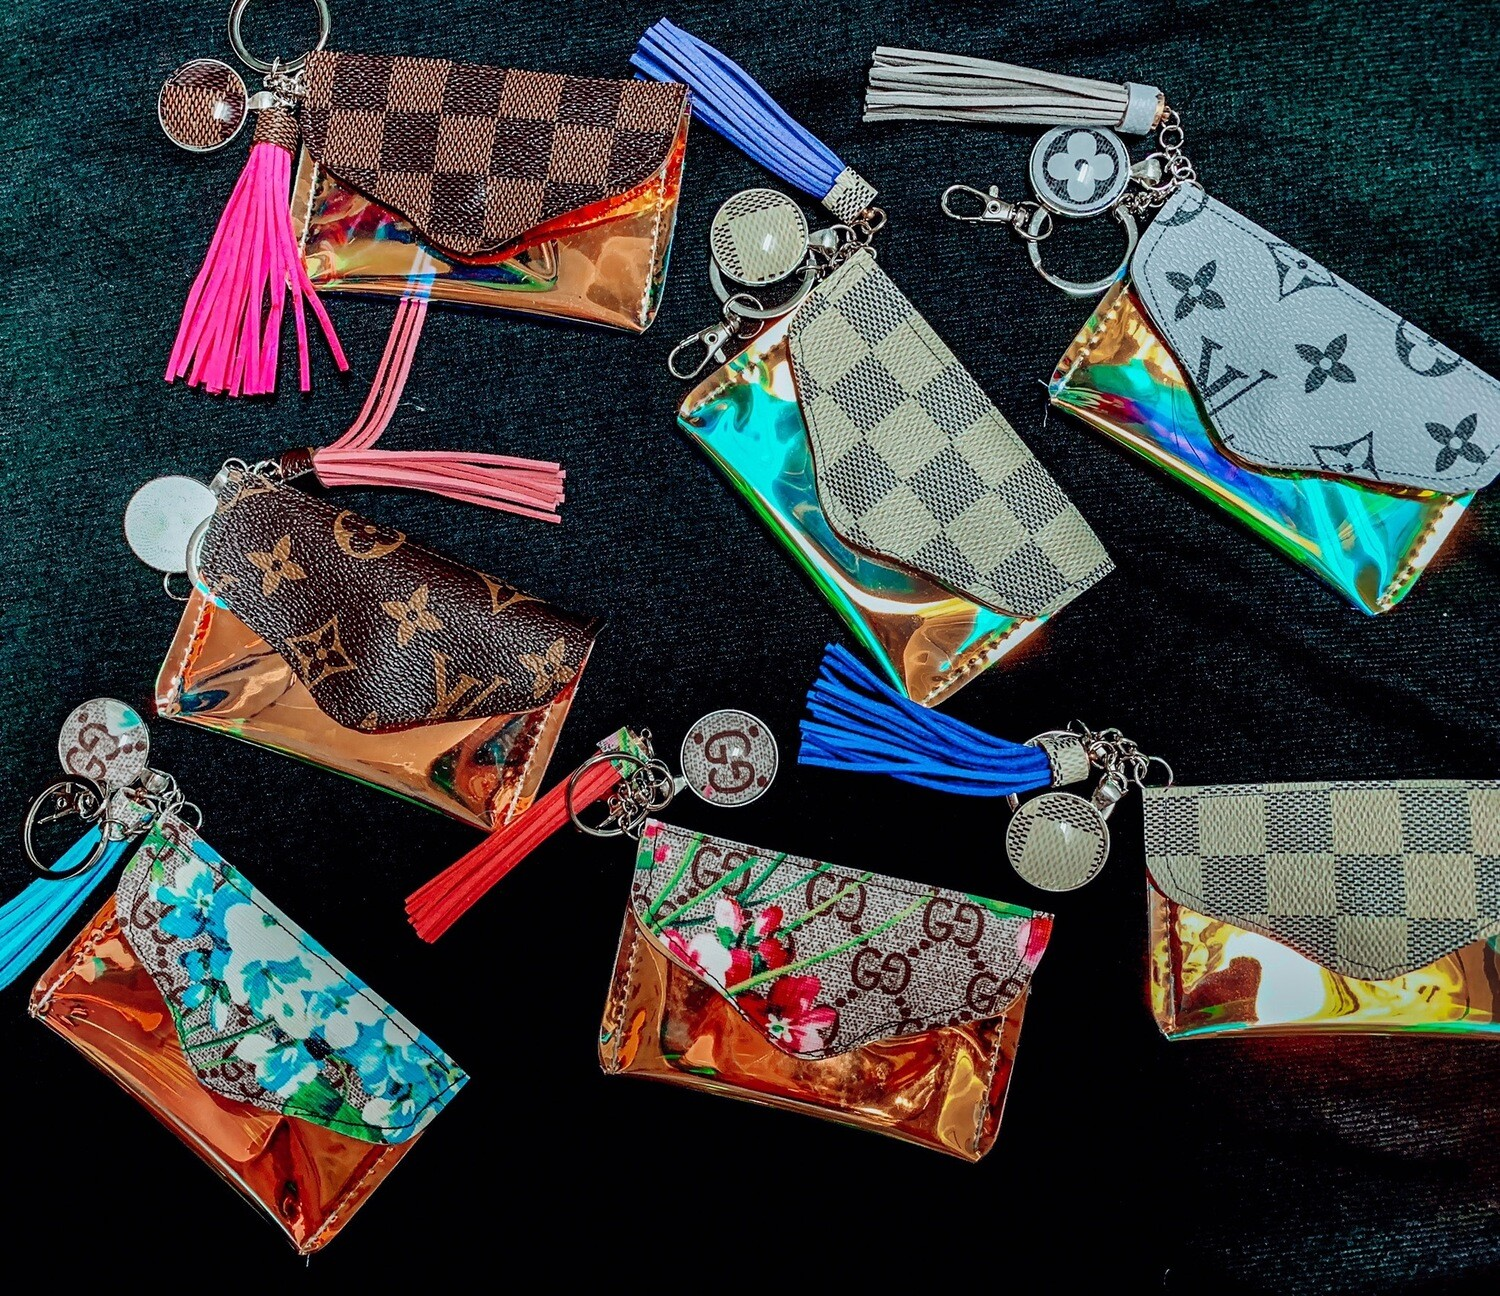 Iridescent Upcycle Card Holder